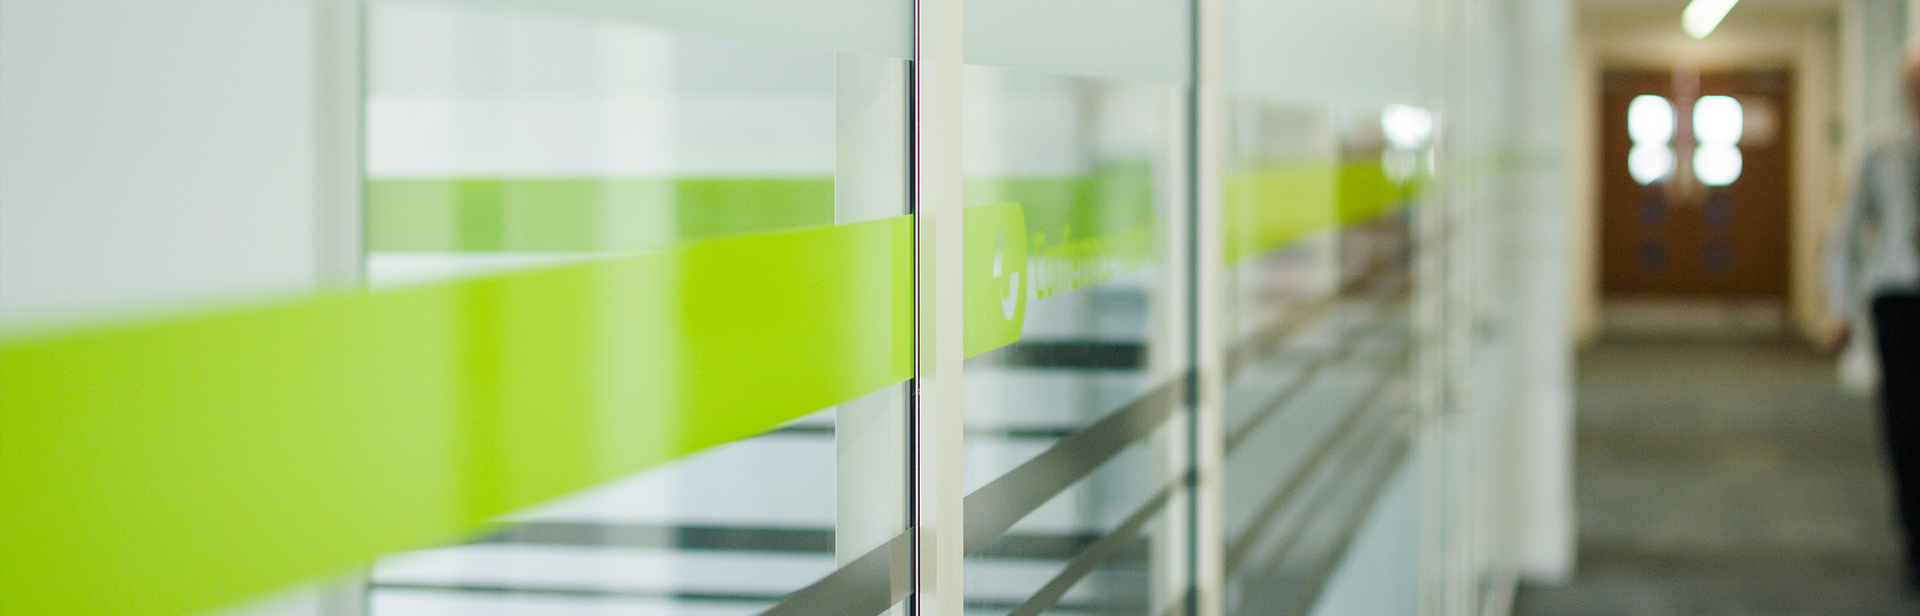 Frosted glass vinyl with green translucent stripes